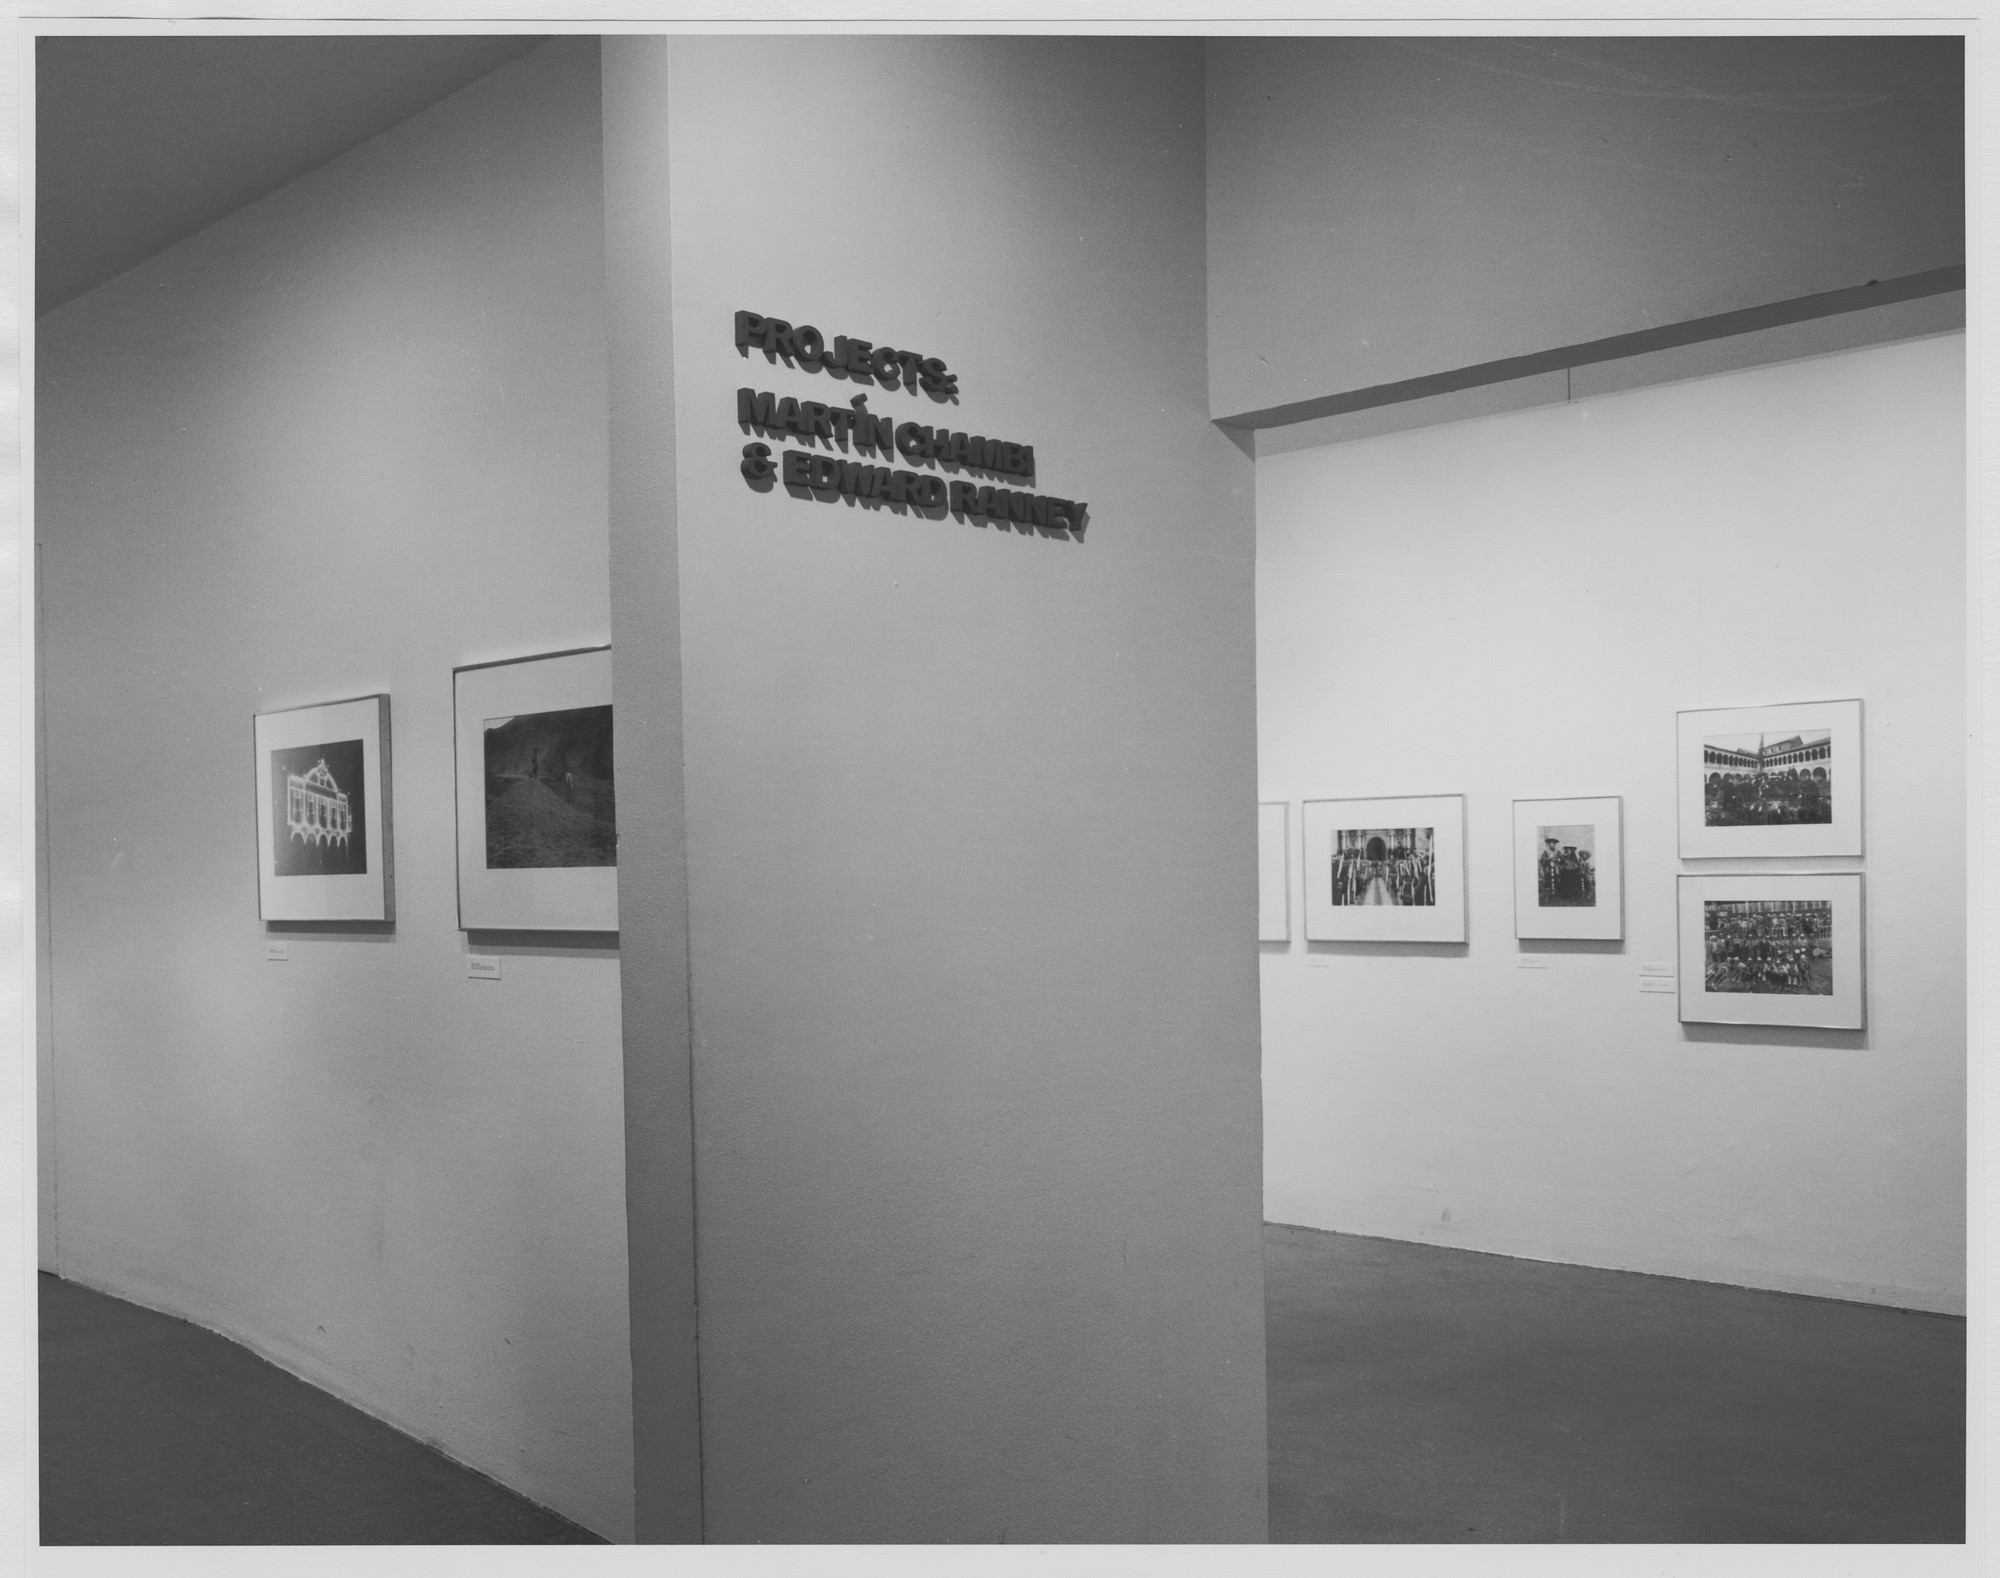 "Installation view of the exhibition, ""Projects: Martin Chambi and Edward Ranney"" March 23, 1979–May 3, 1979. Photographic Archive. The Museum of Modern Art Archives, New York. IN1256.1. Photograph by Mali Olatunji."